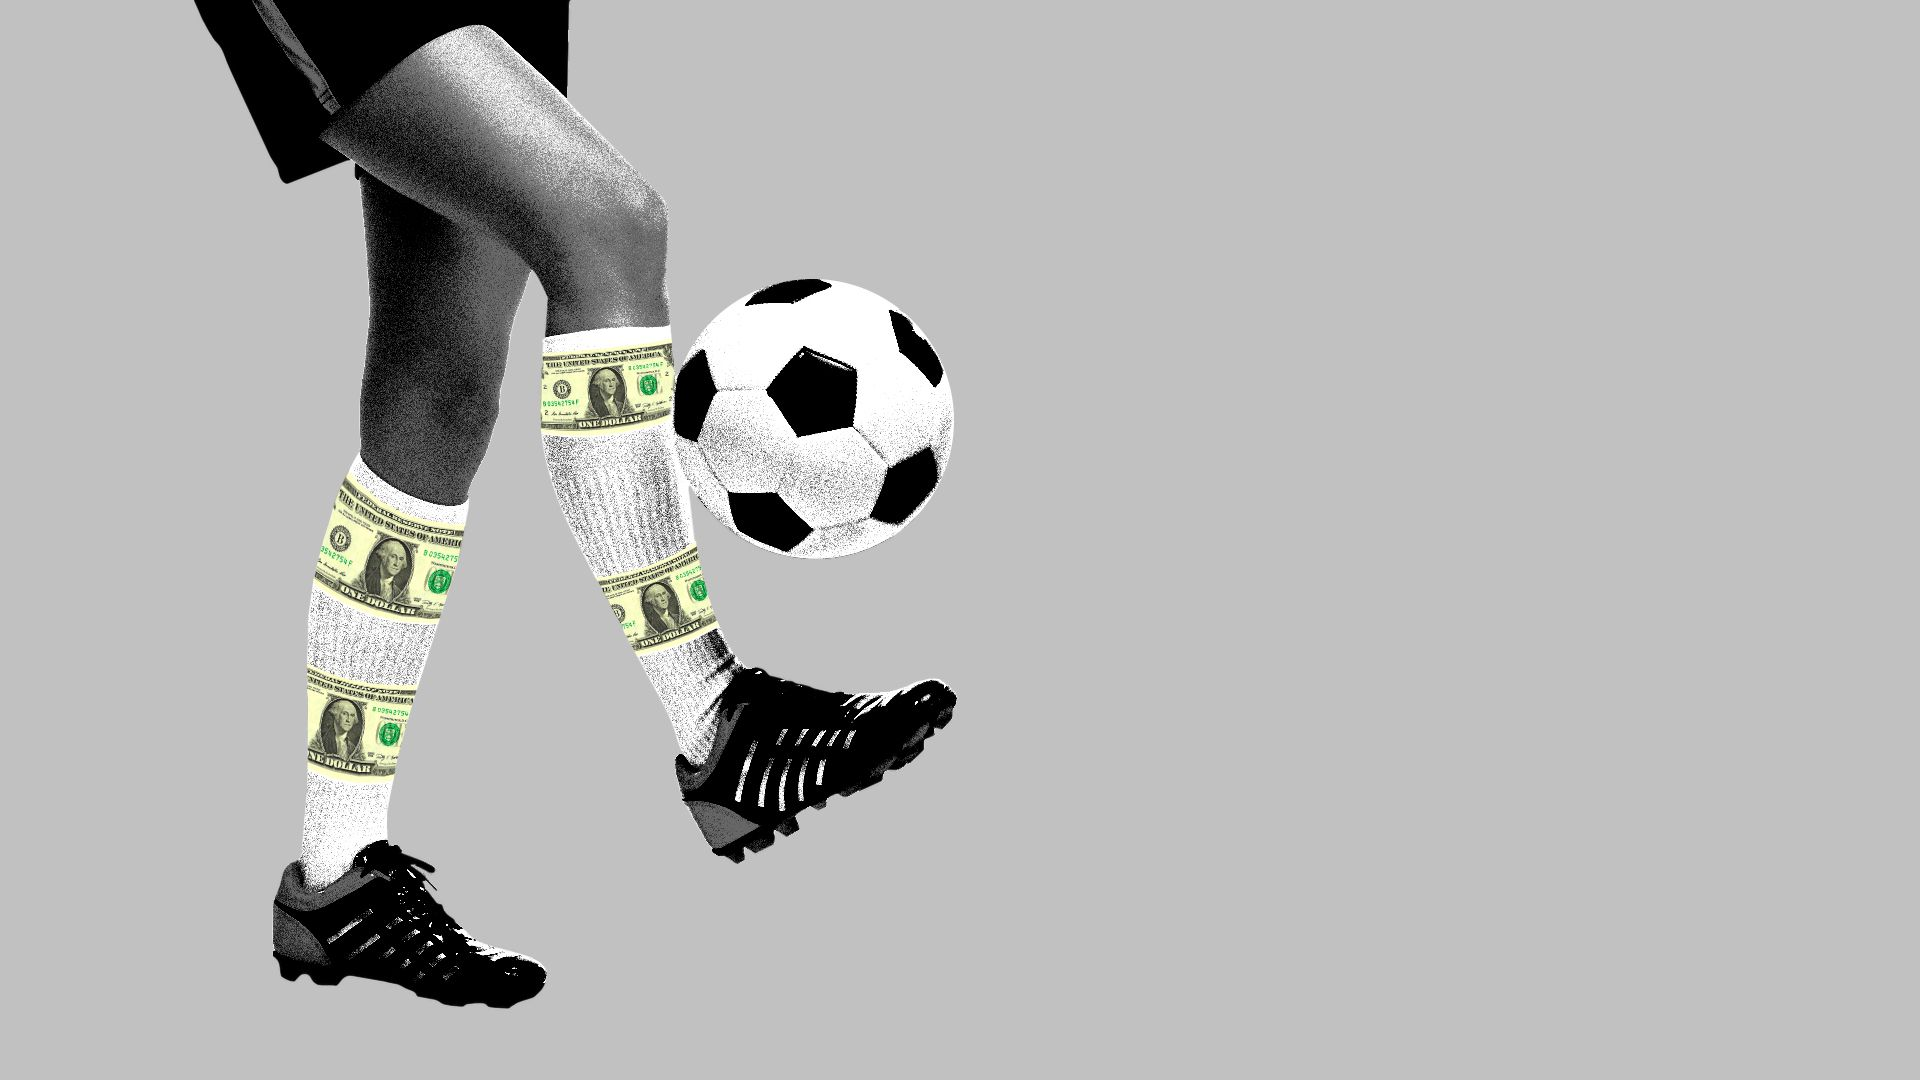 Illustration of soccer player with money striped socks